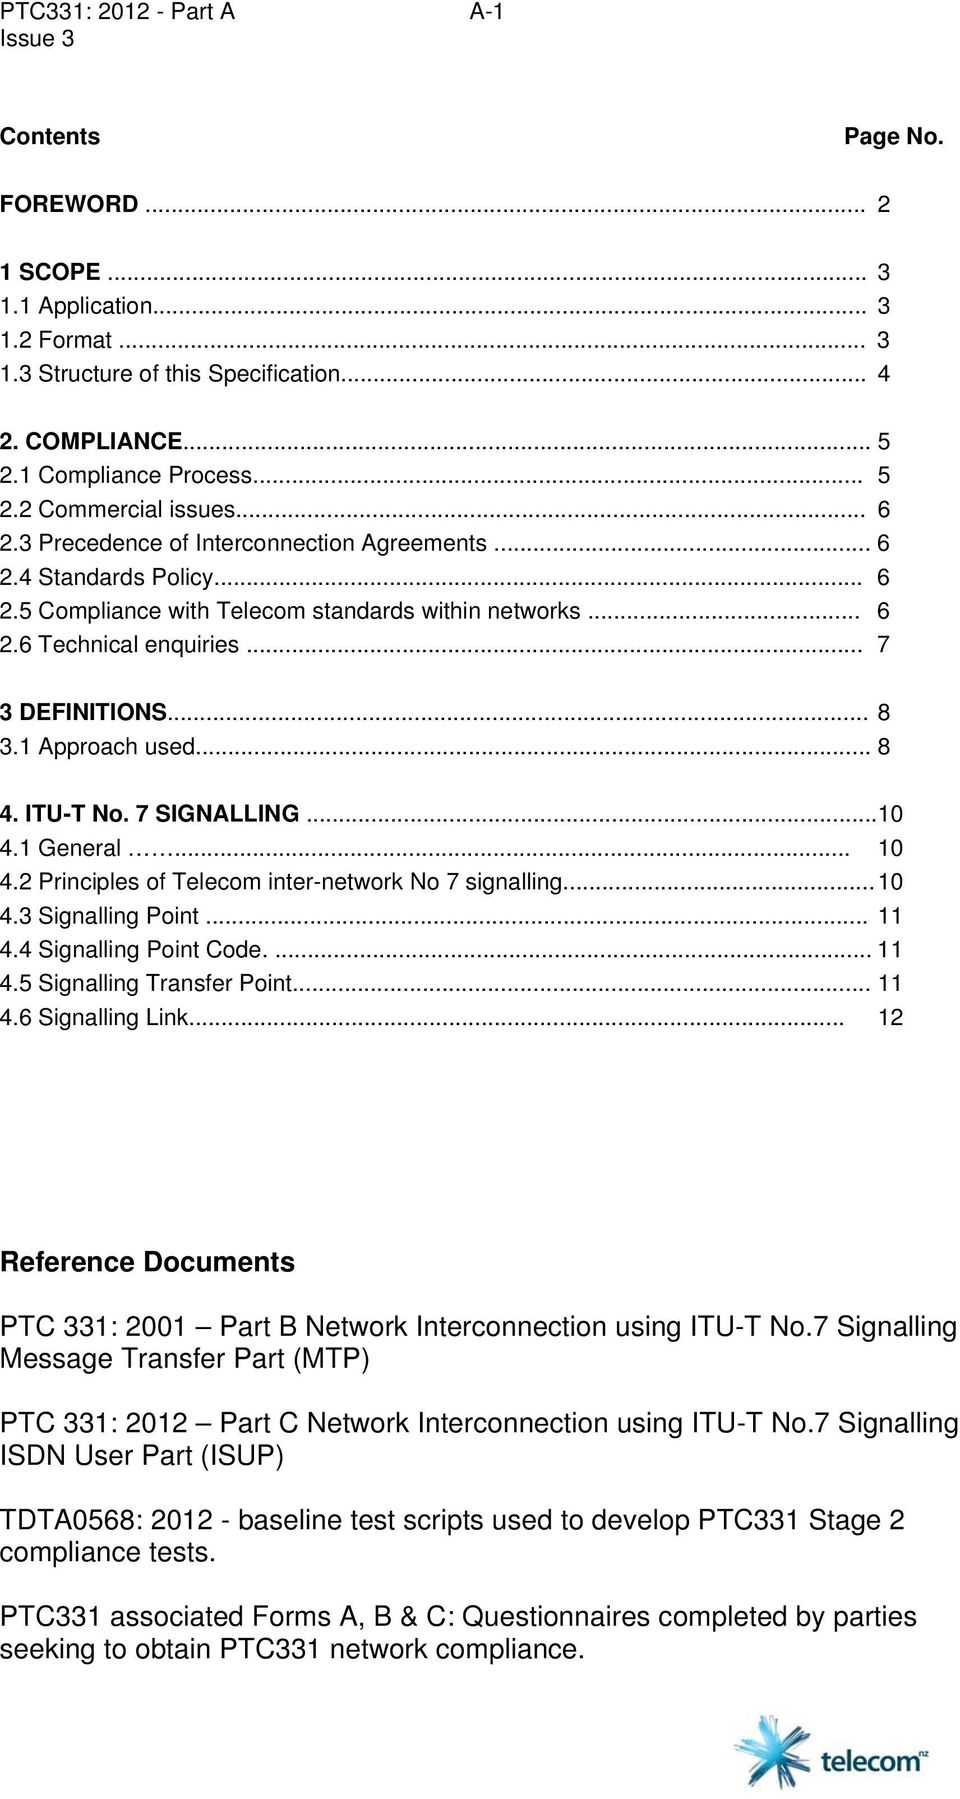 1 Approach used... 8 4. ITU-T No. 7 SIGNALLING...10 4.1 General... 10 4.2 Principles of Telecom inter-network No 7 signalling... 10 4.3 Signalling Point... 11 4.4 Signalling Point Code.... 11 4.5 Signalling Transfer Point.